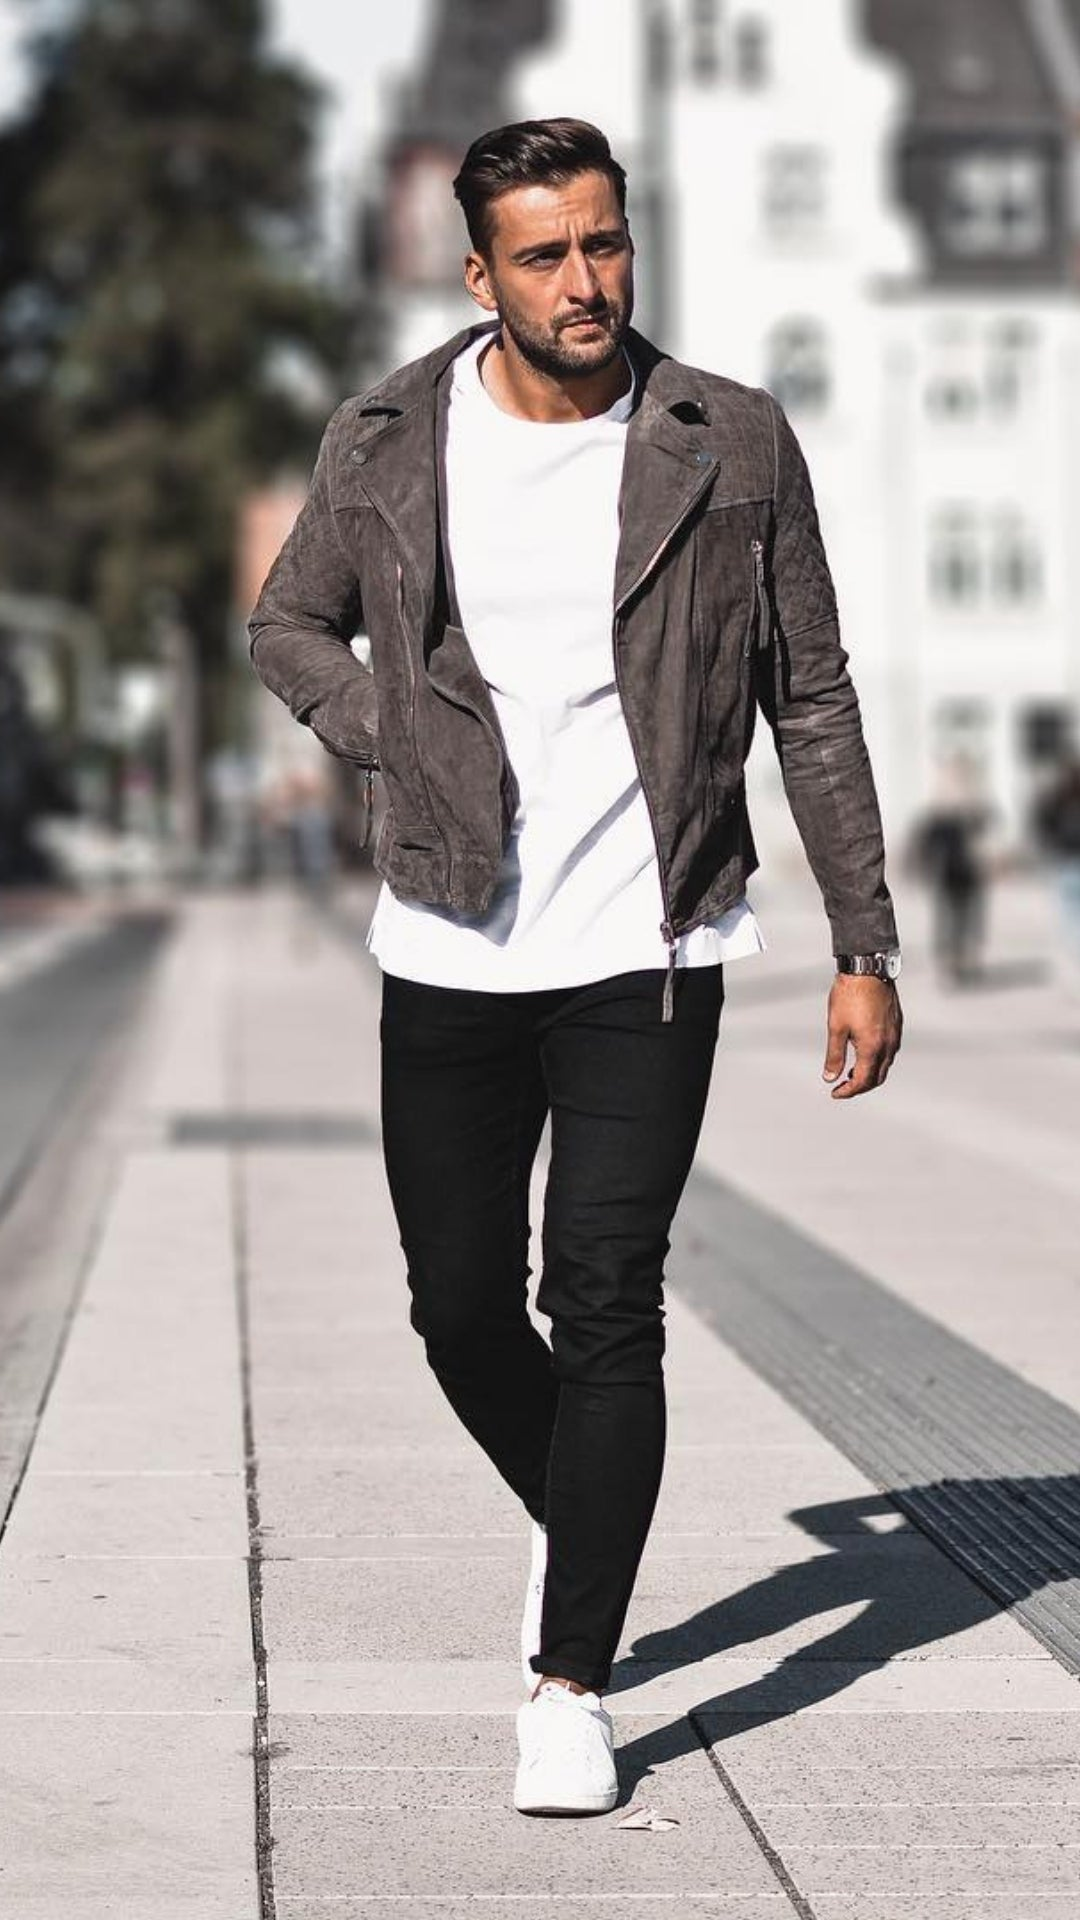 5 Outfits You Need To Look Totally Dapper This Winter #winterfashion #fallstyle #mensfashion #streetstyle